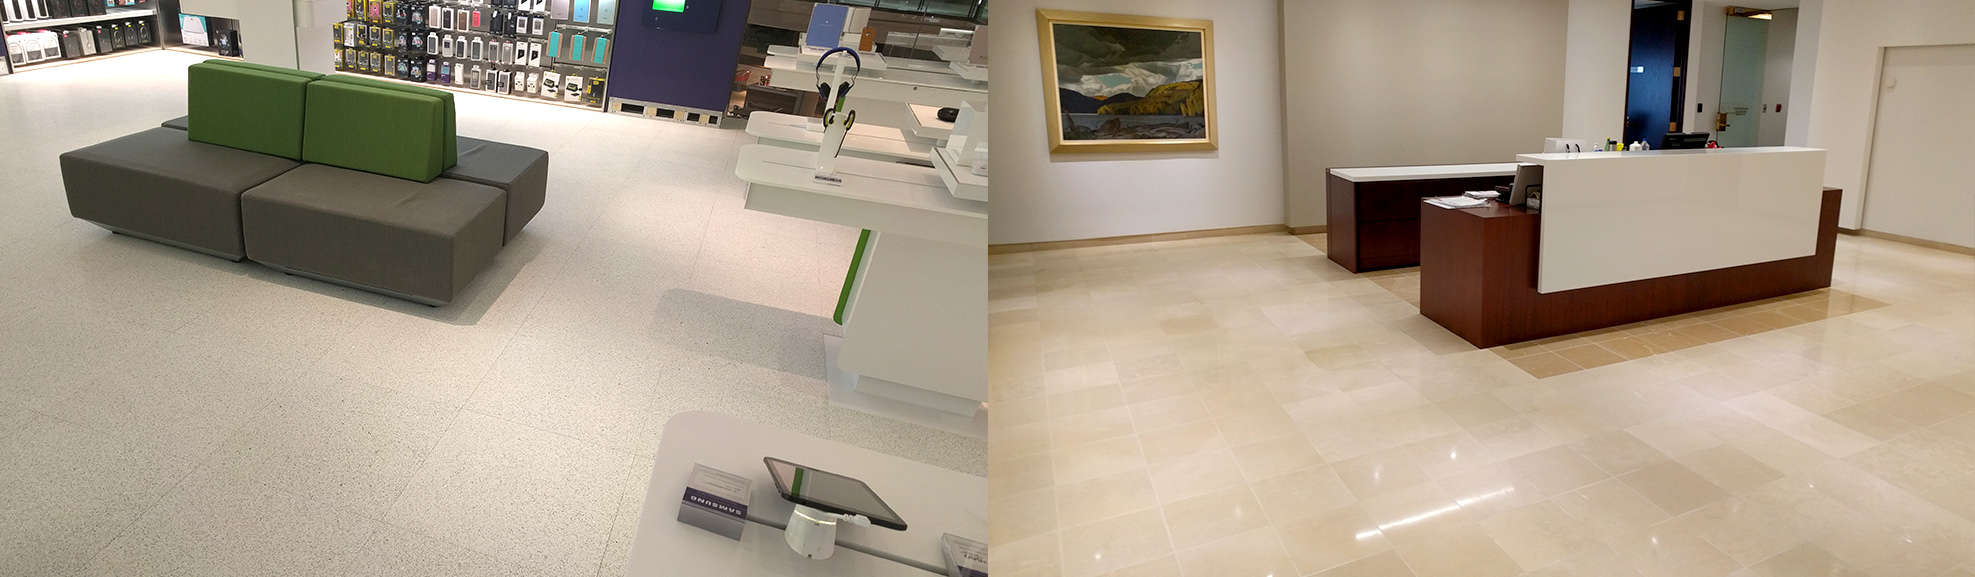 Commercial Spaces, lobbies, reception, offices